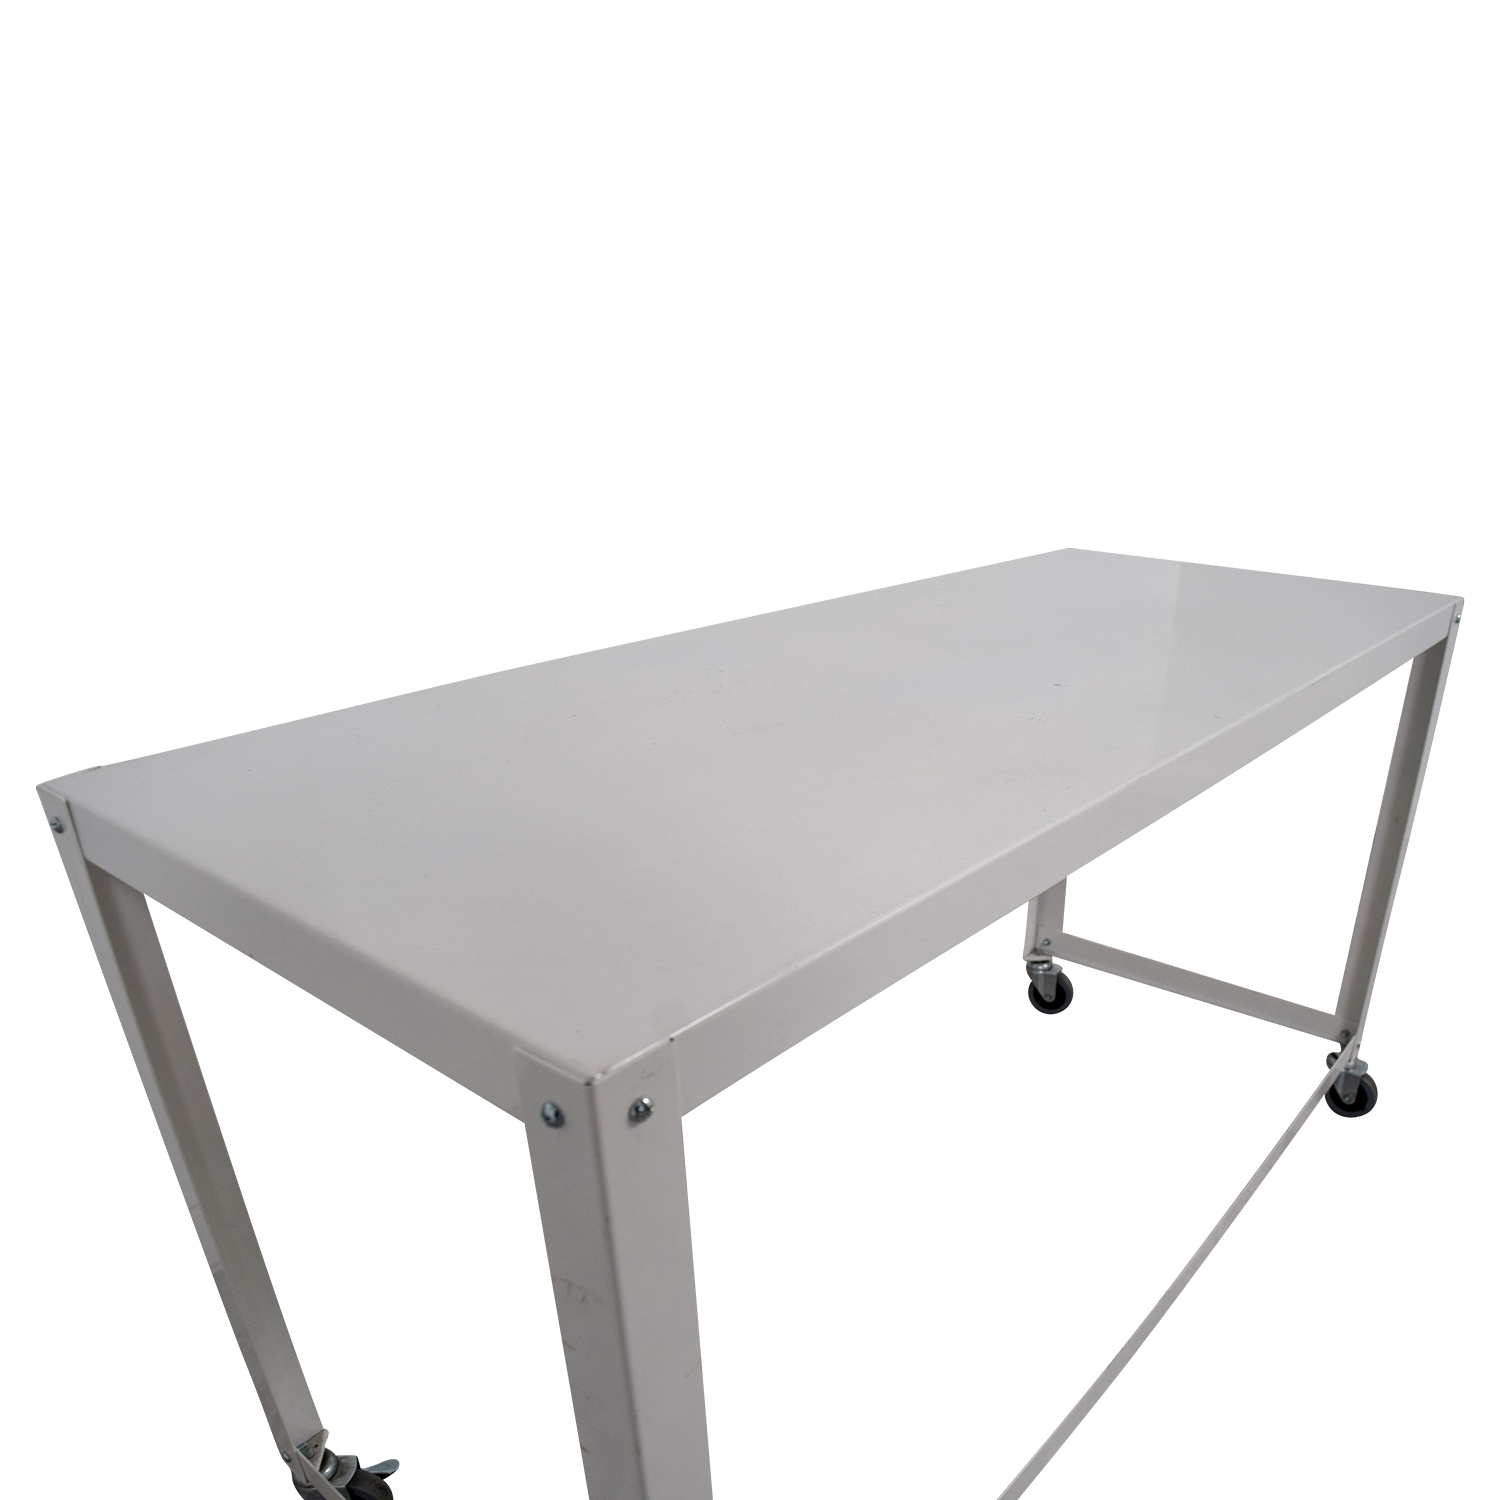 81% Off - Cb2 Cb2 Go-Cart White Rolling Desk / Tables within Go-Cart White Rolling Coffee Tables (Image 5 of 30)